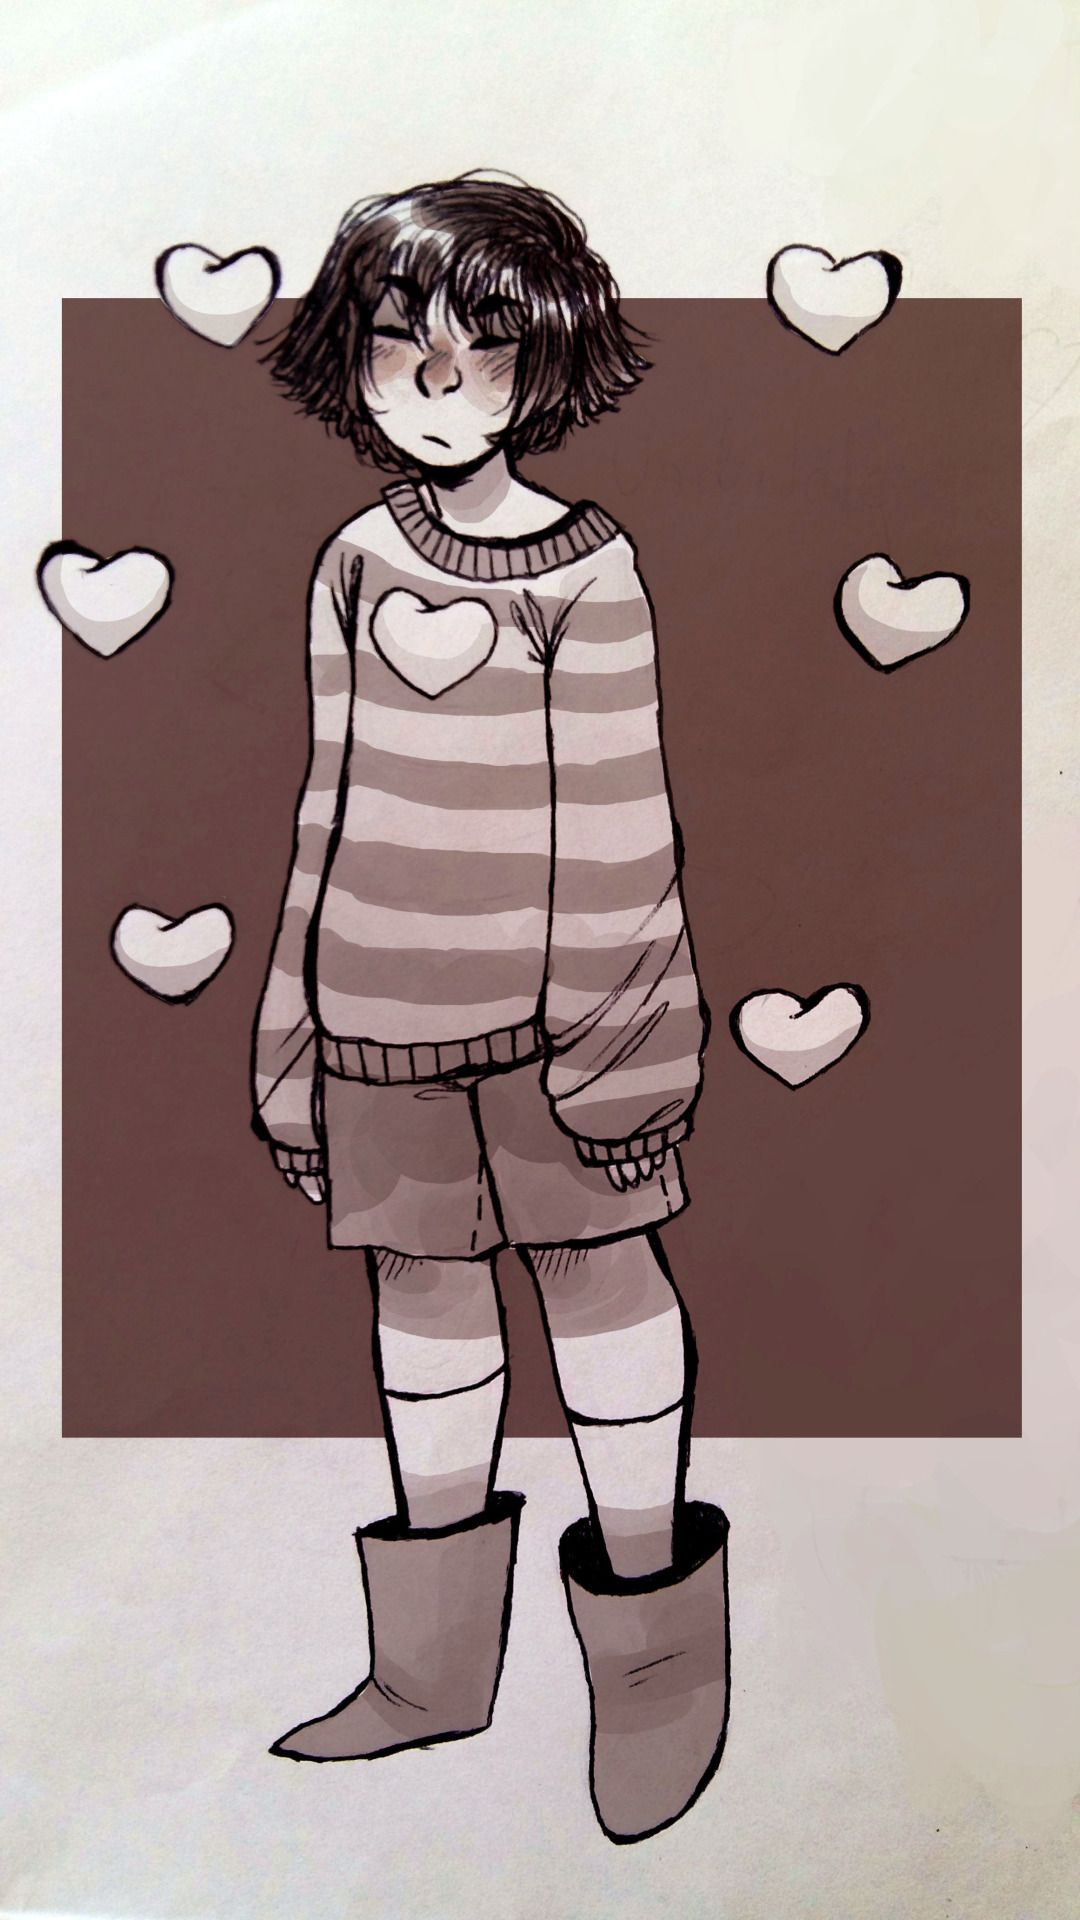 undertale | Tumblr This is so adorable